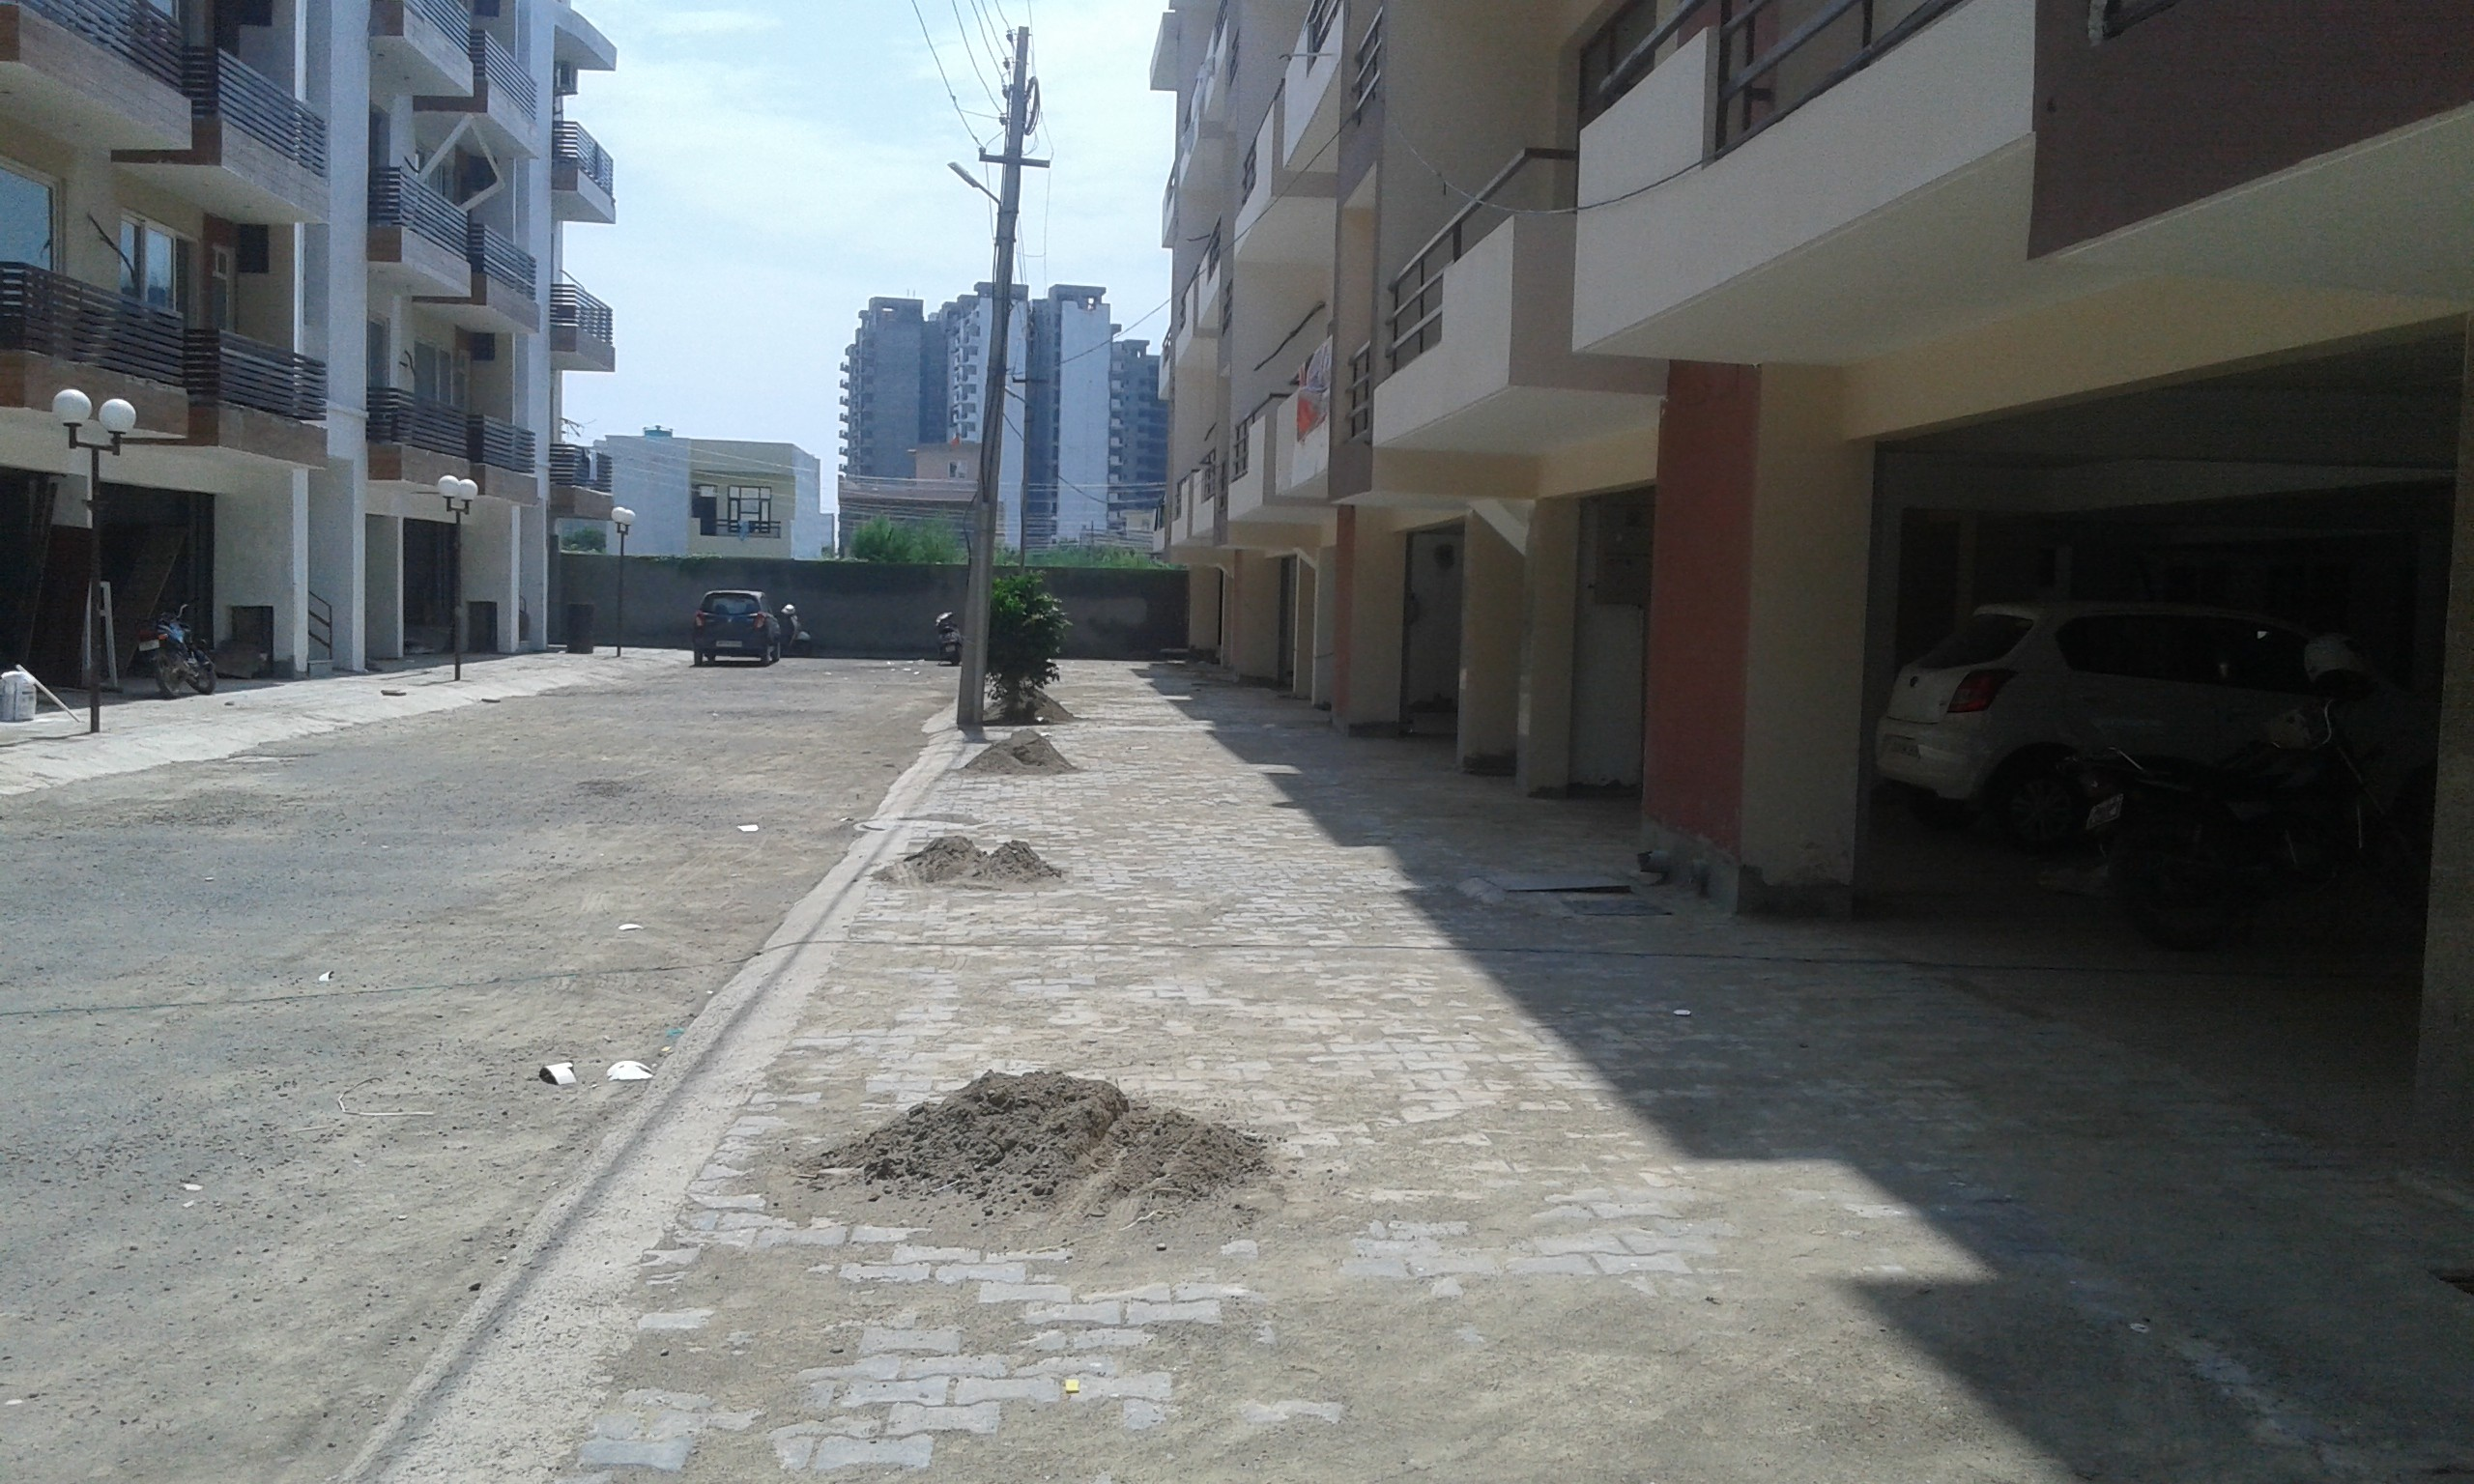 Flats in Zirakpur -3 Bhk Ready To Move Flats In Zirakpur ( Flats ) @ 32.90 Lac In Prime Homes Near Ambala Road Zirakpur